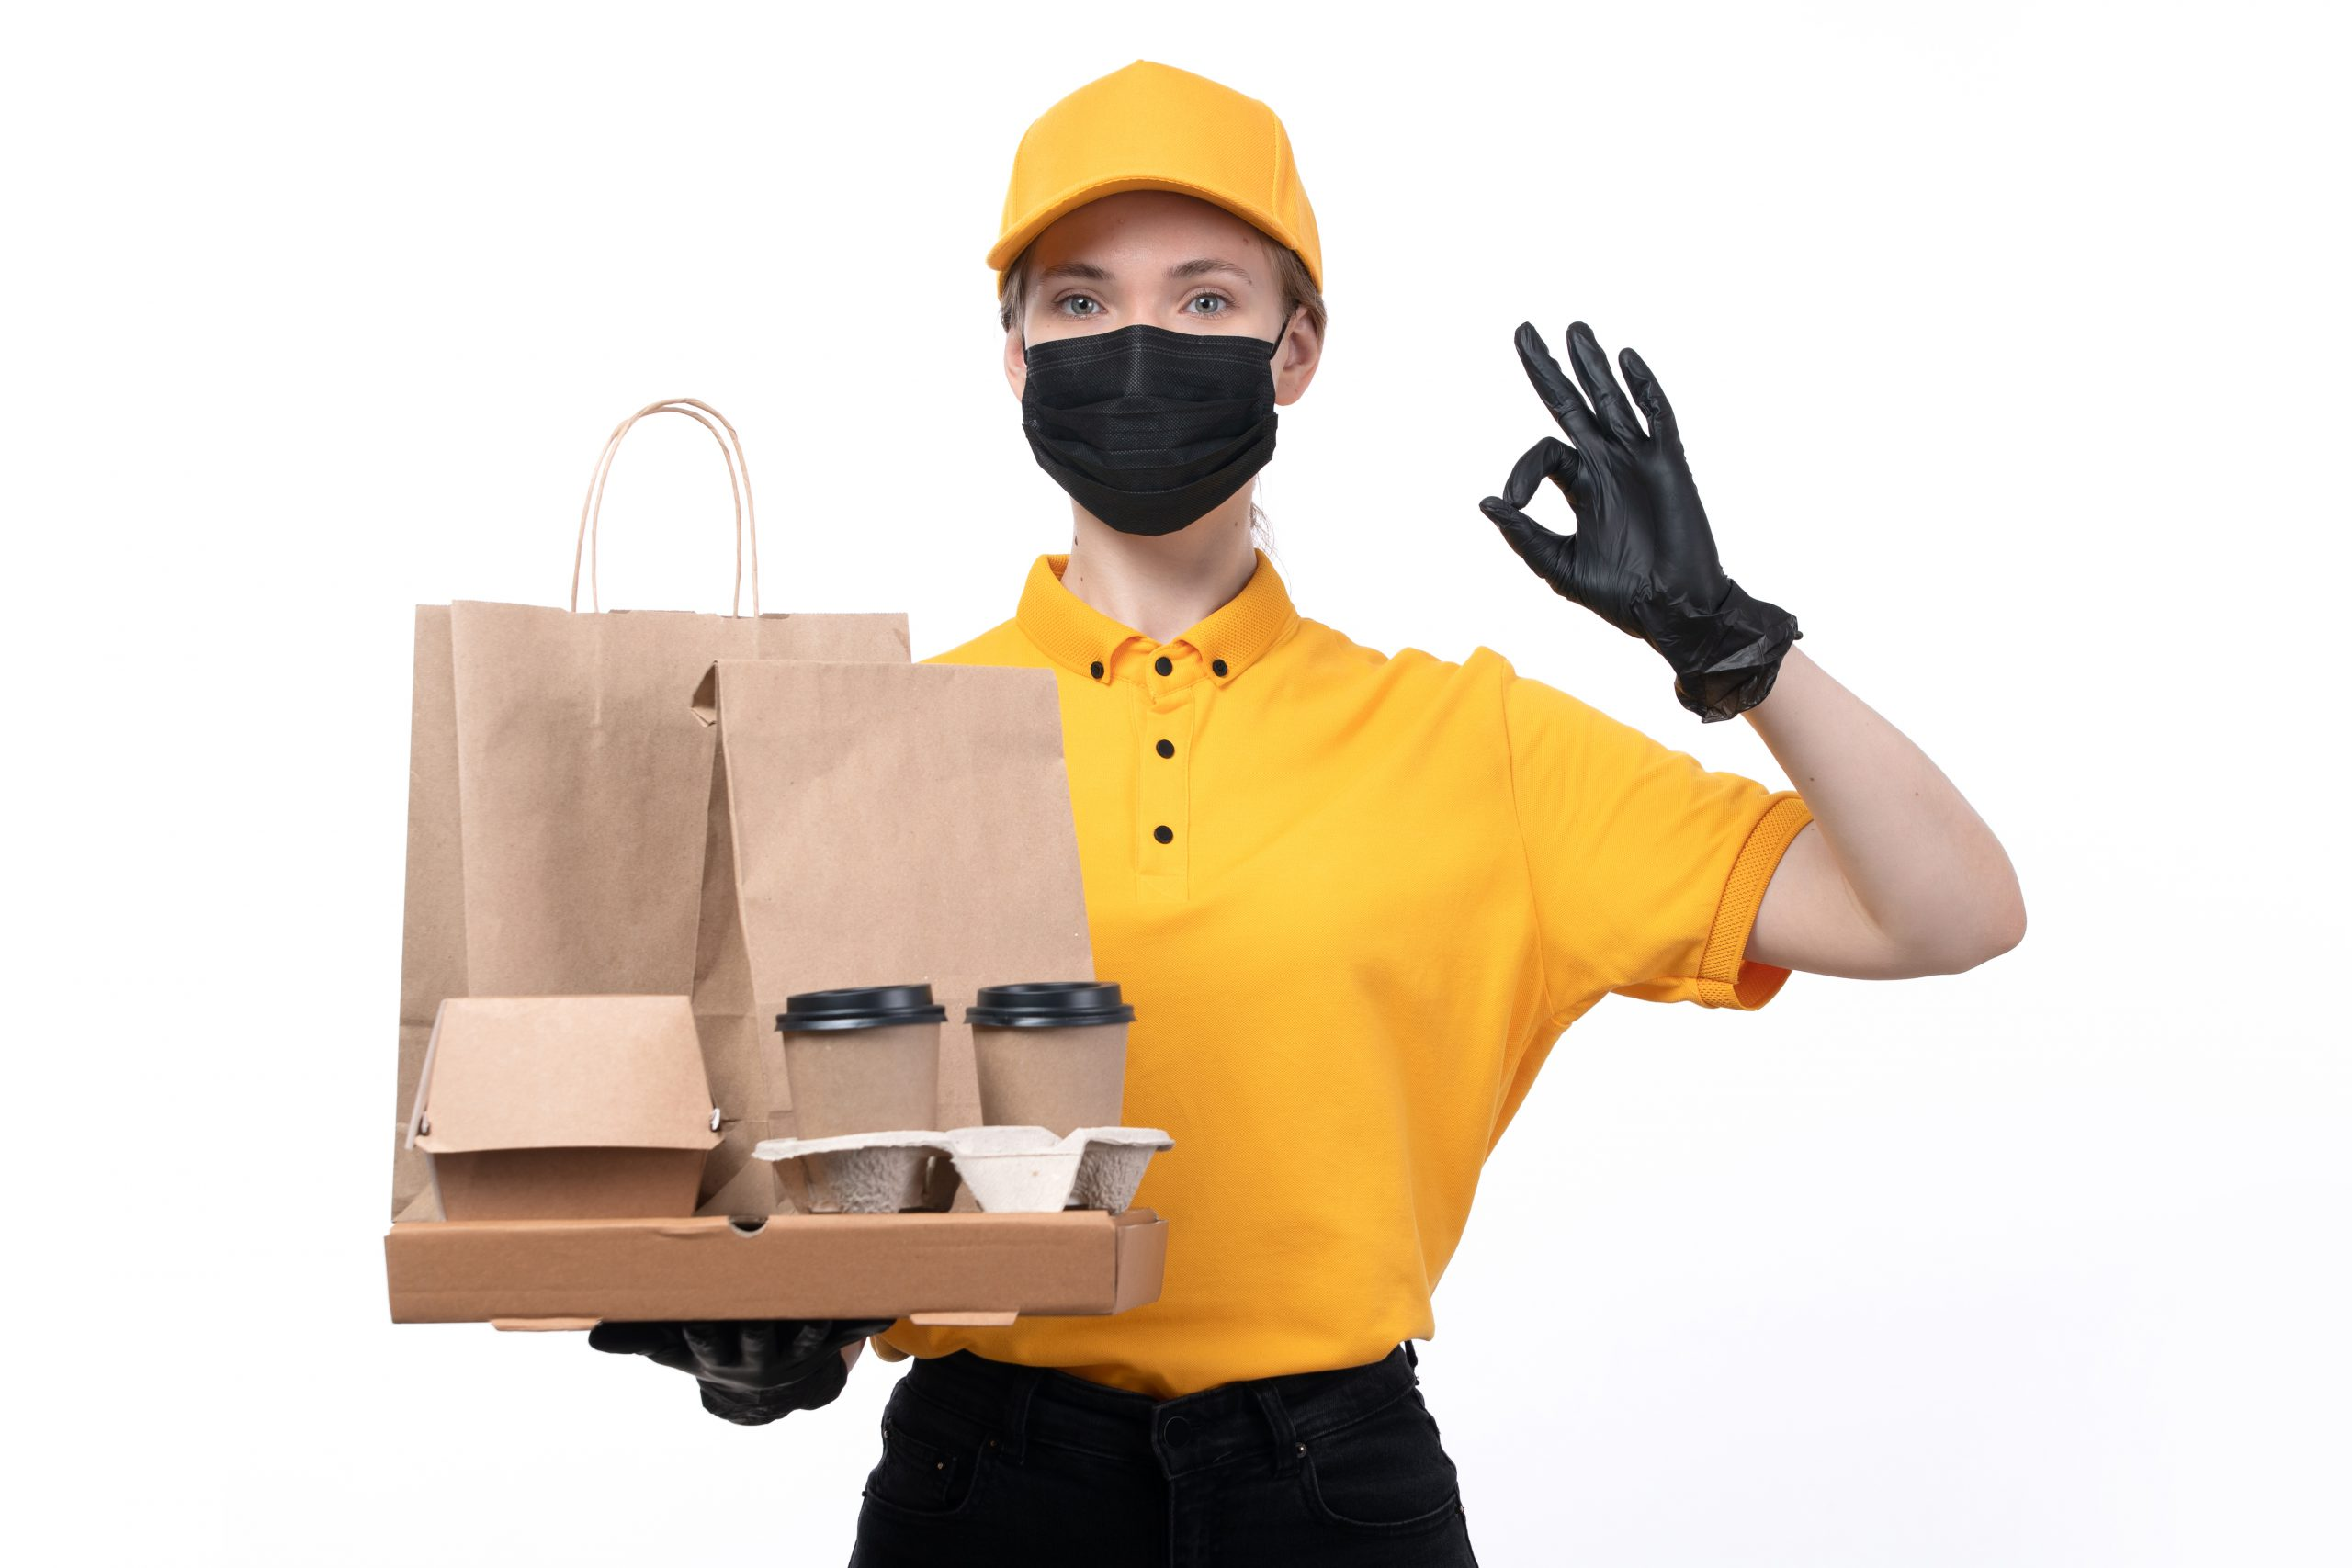 """front view young female courier yellow uniform black gloves black mask holding coffee cups food delivery packages scaled - บรรจุภัณฑ์ กับบทบาทหลากมิติ """"ให้"""" ประโยชน์มากกว่าที่คิด"""